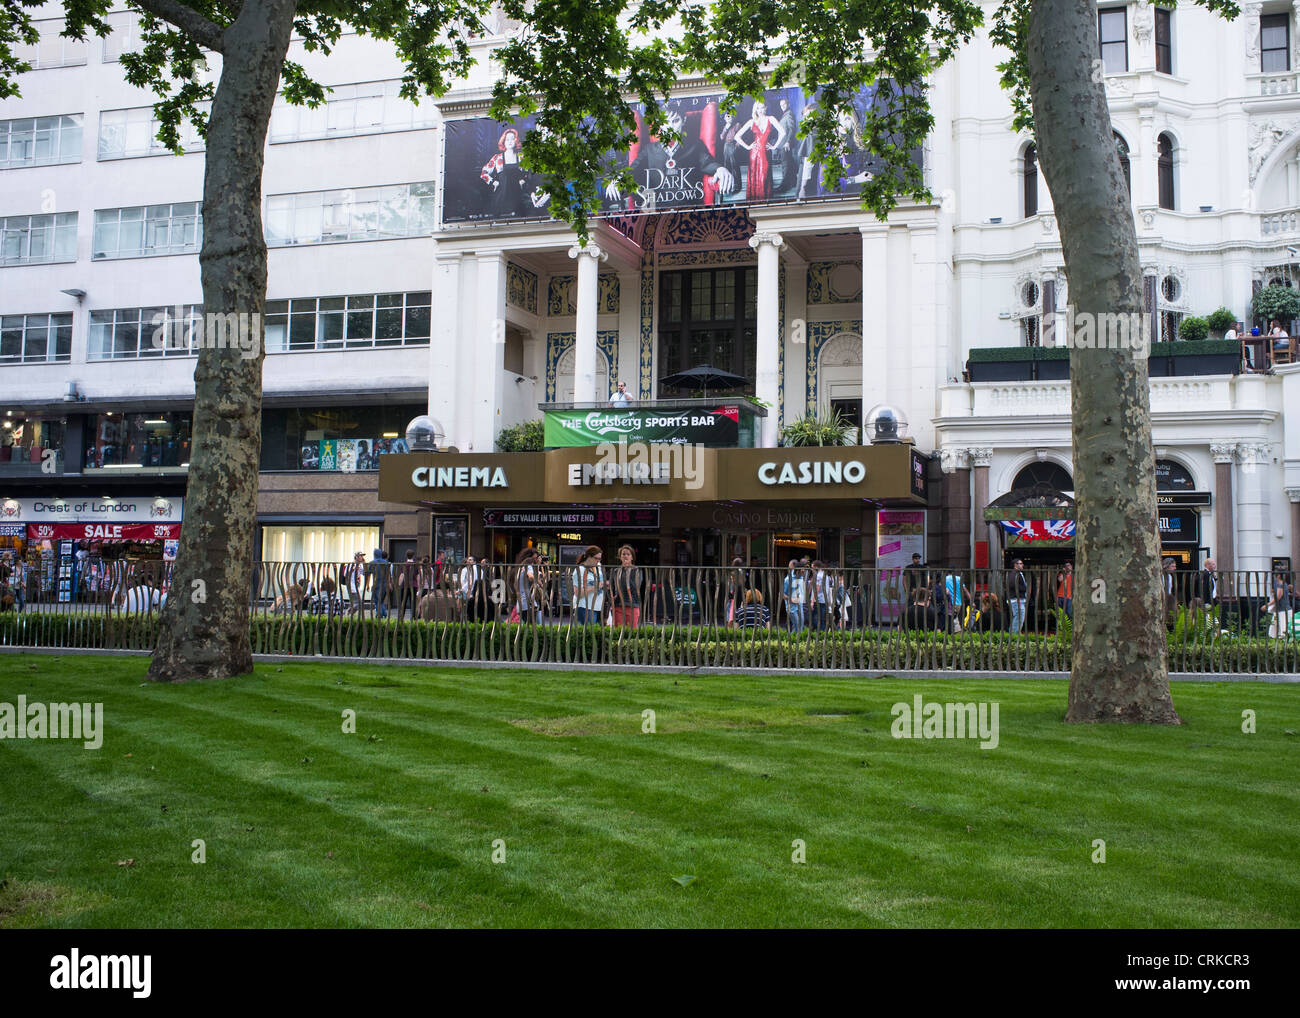 The Empire Cinema from Leicester Square Gardens just after the gardens were refurbished in 2012 - Stock Image